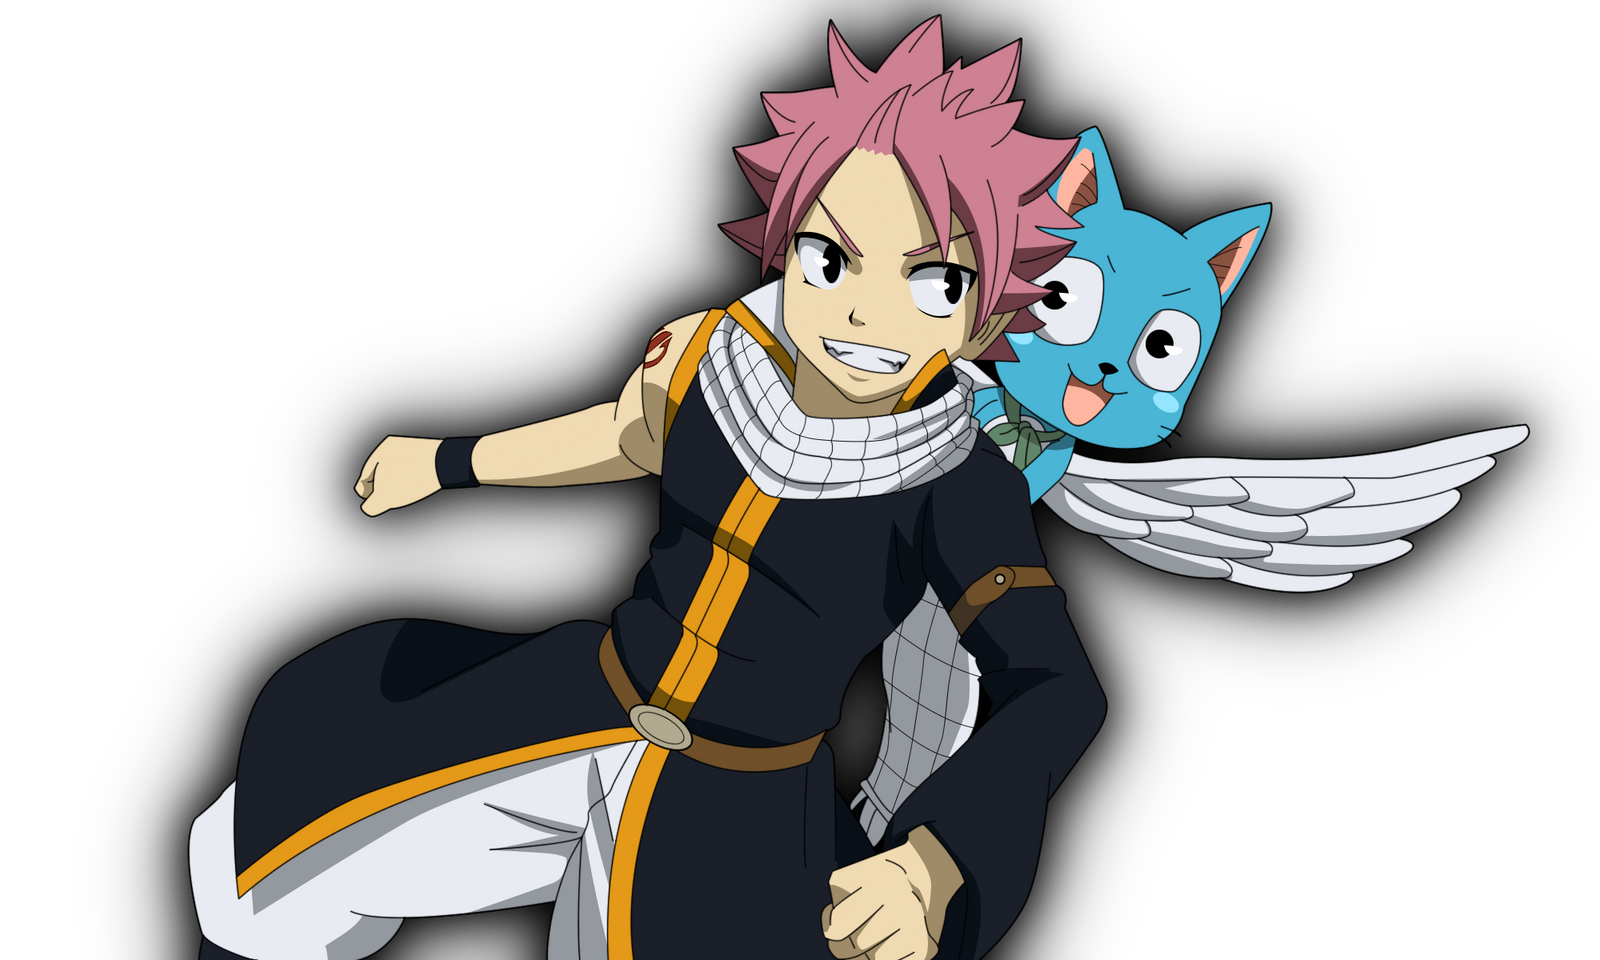 natsu and happy by cantrona on deviantart